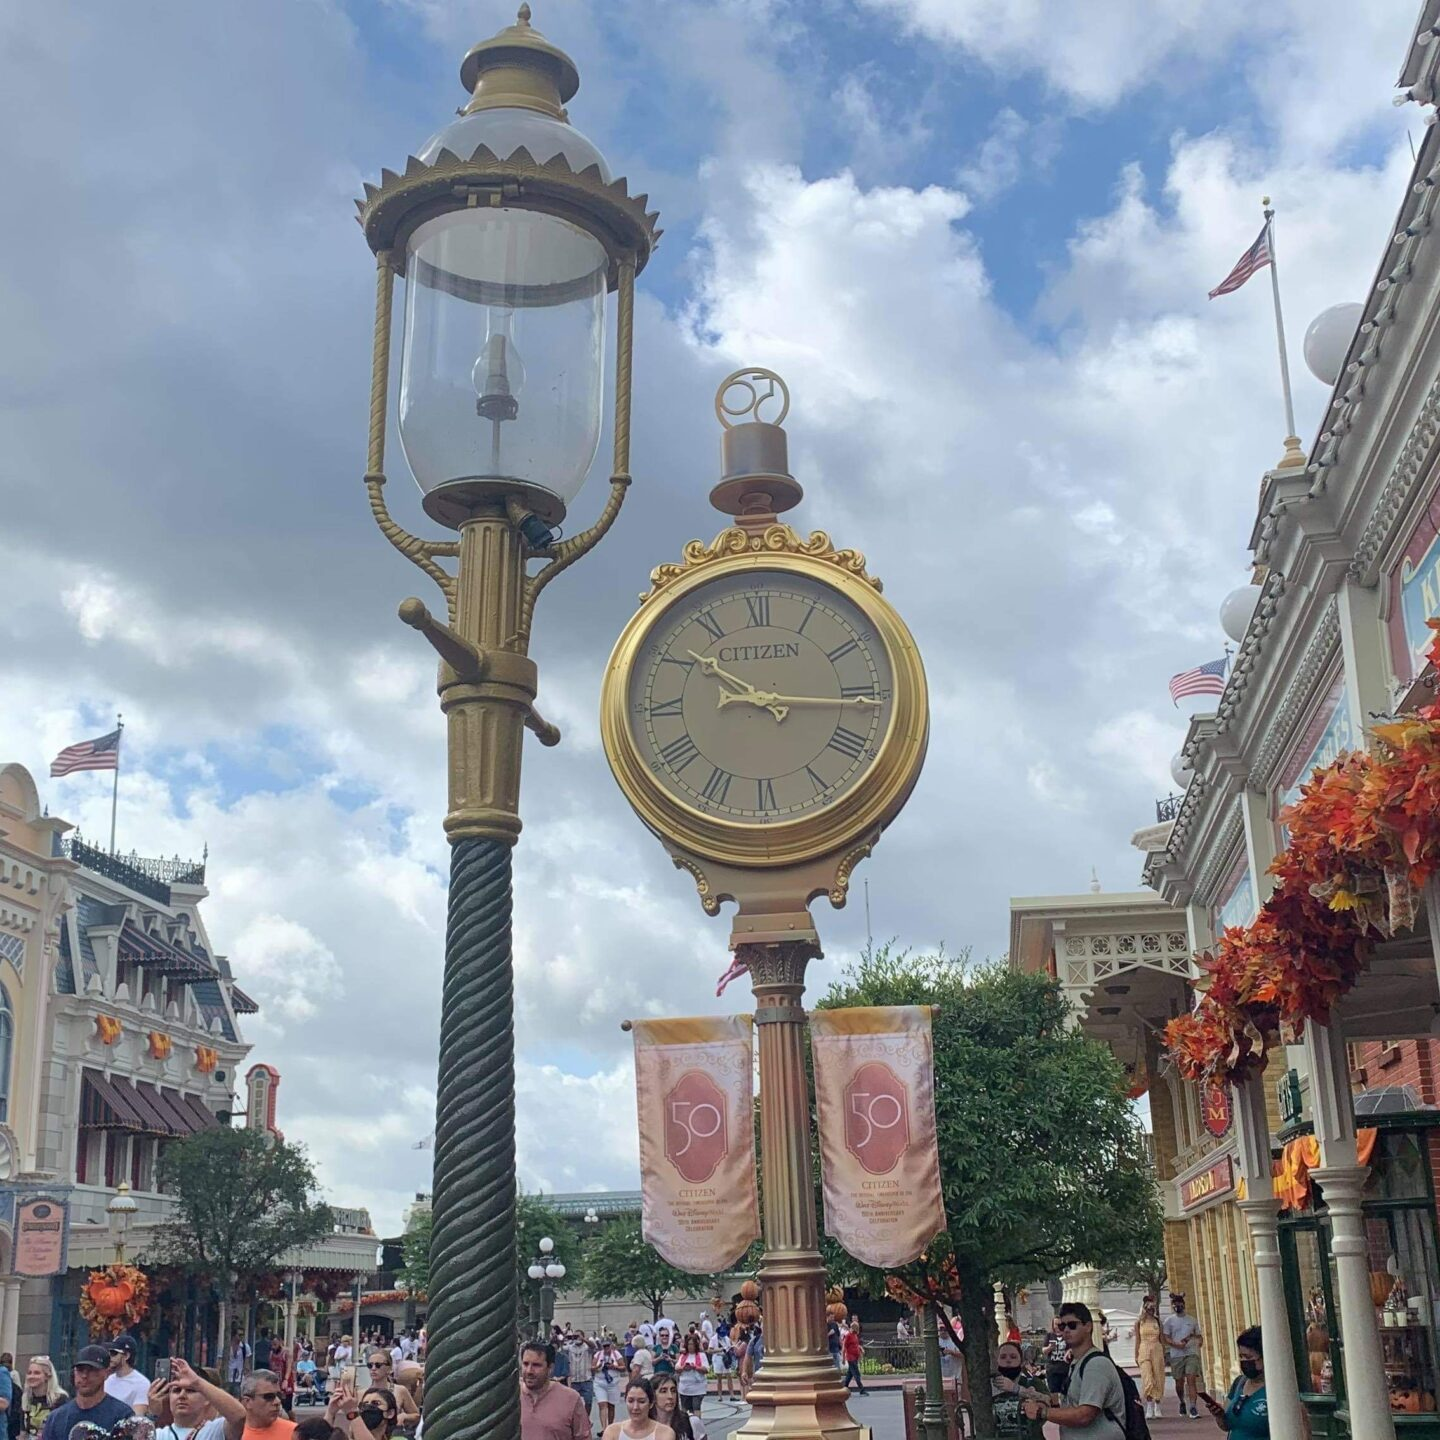 Golden Lampposts installed in the Magic Kingdom for Disney World's 50th 2